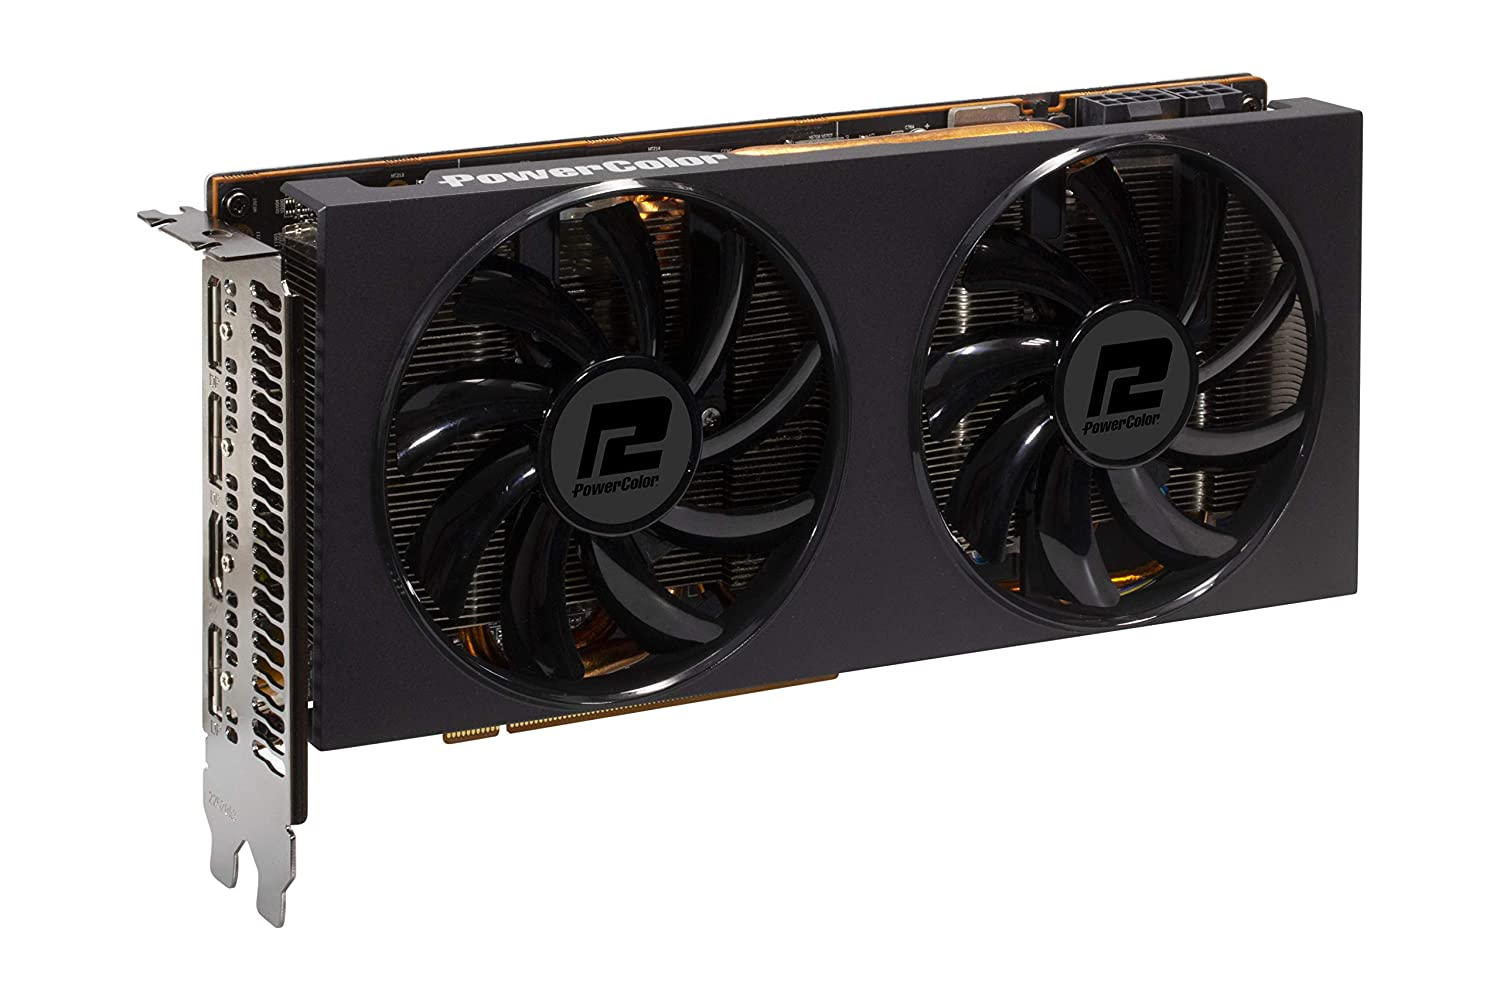 Powercolor Radeon RX 5700XT DUAL 8GB